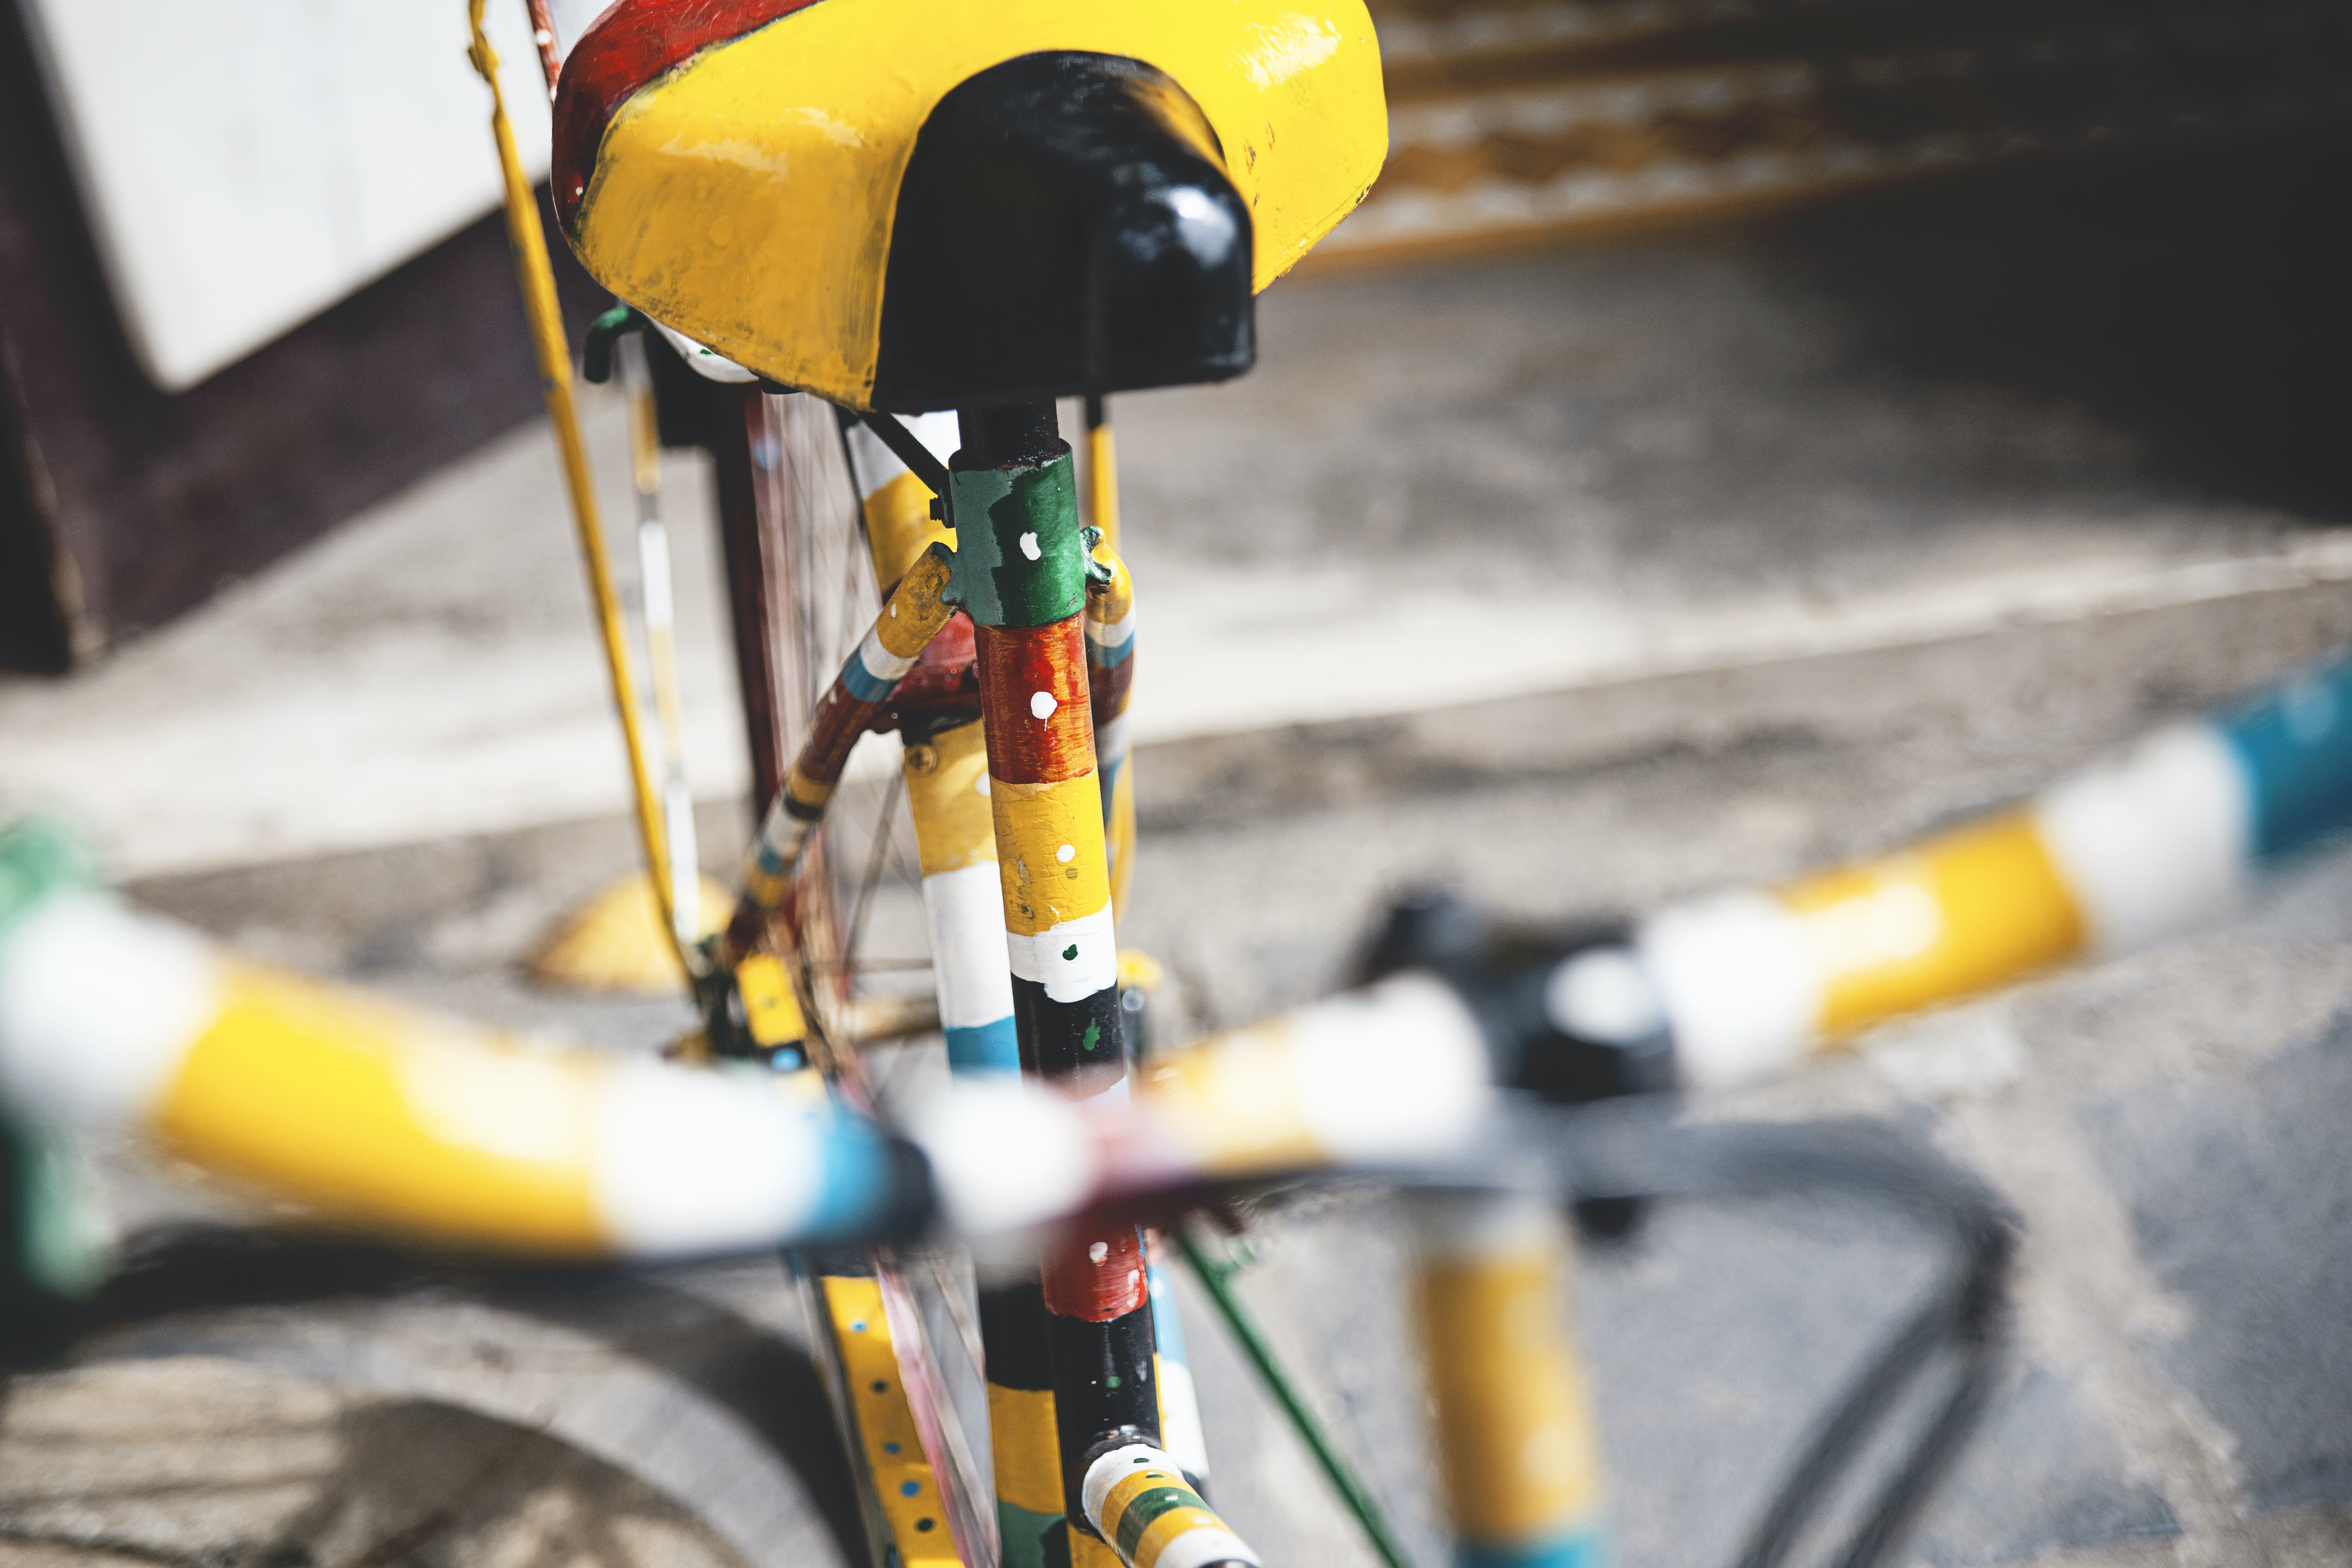 Close-up of a bicycle painted in colorful stripes